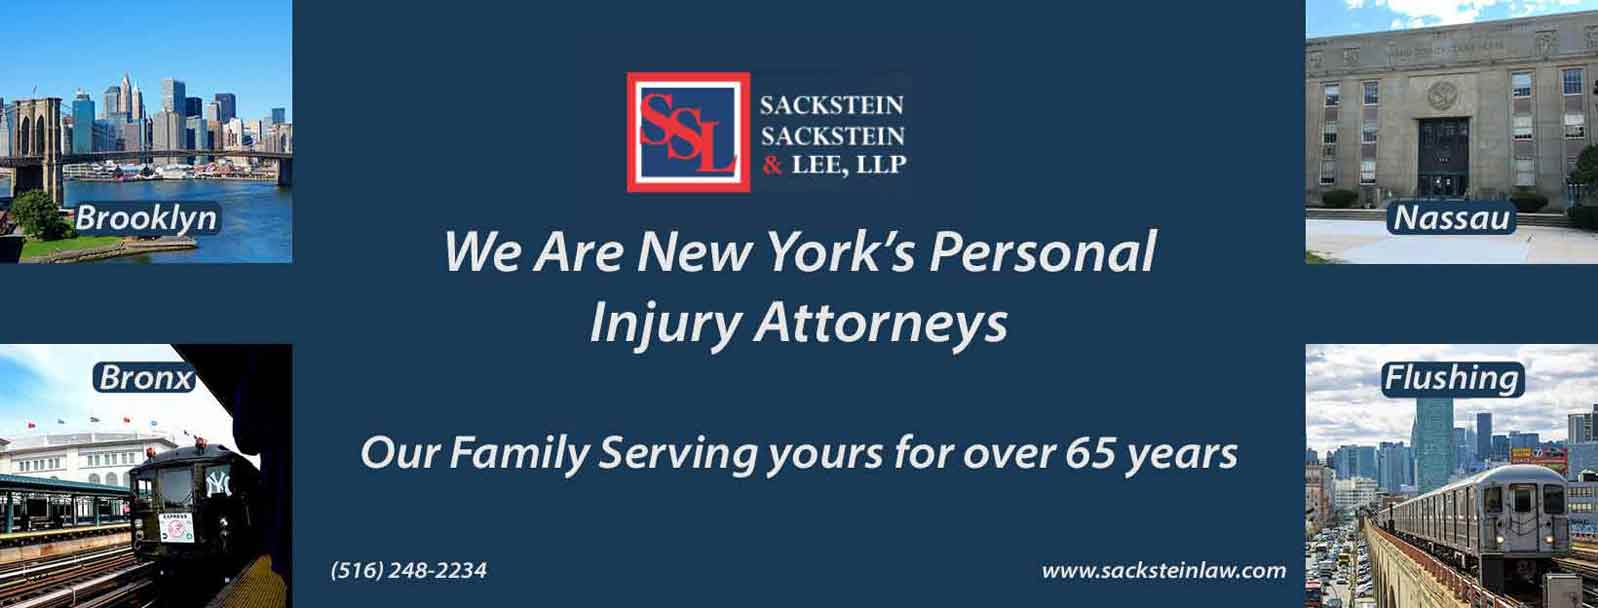 Sackstein Sackstein & Lee, LLP Reviews, Ratings | Lawyers near 154-08 Northern Blvd. , Flushing NY